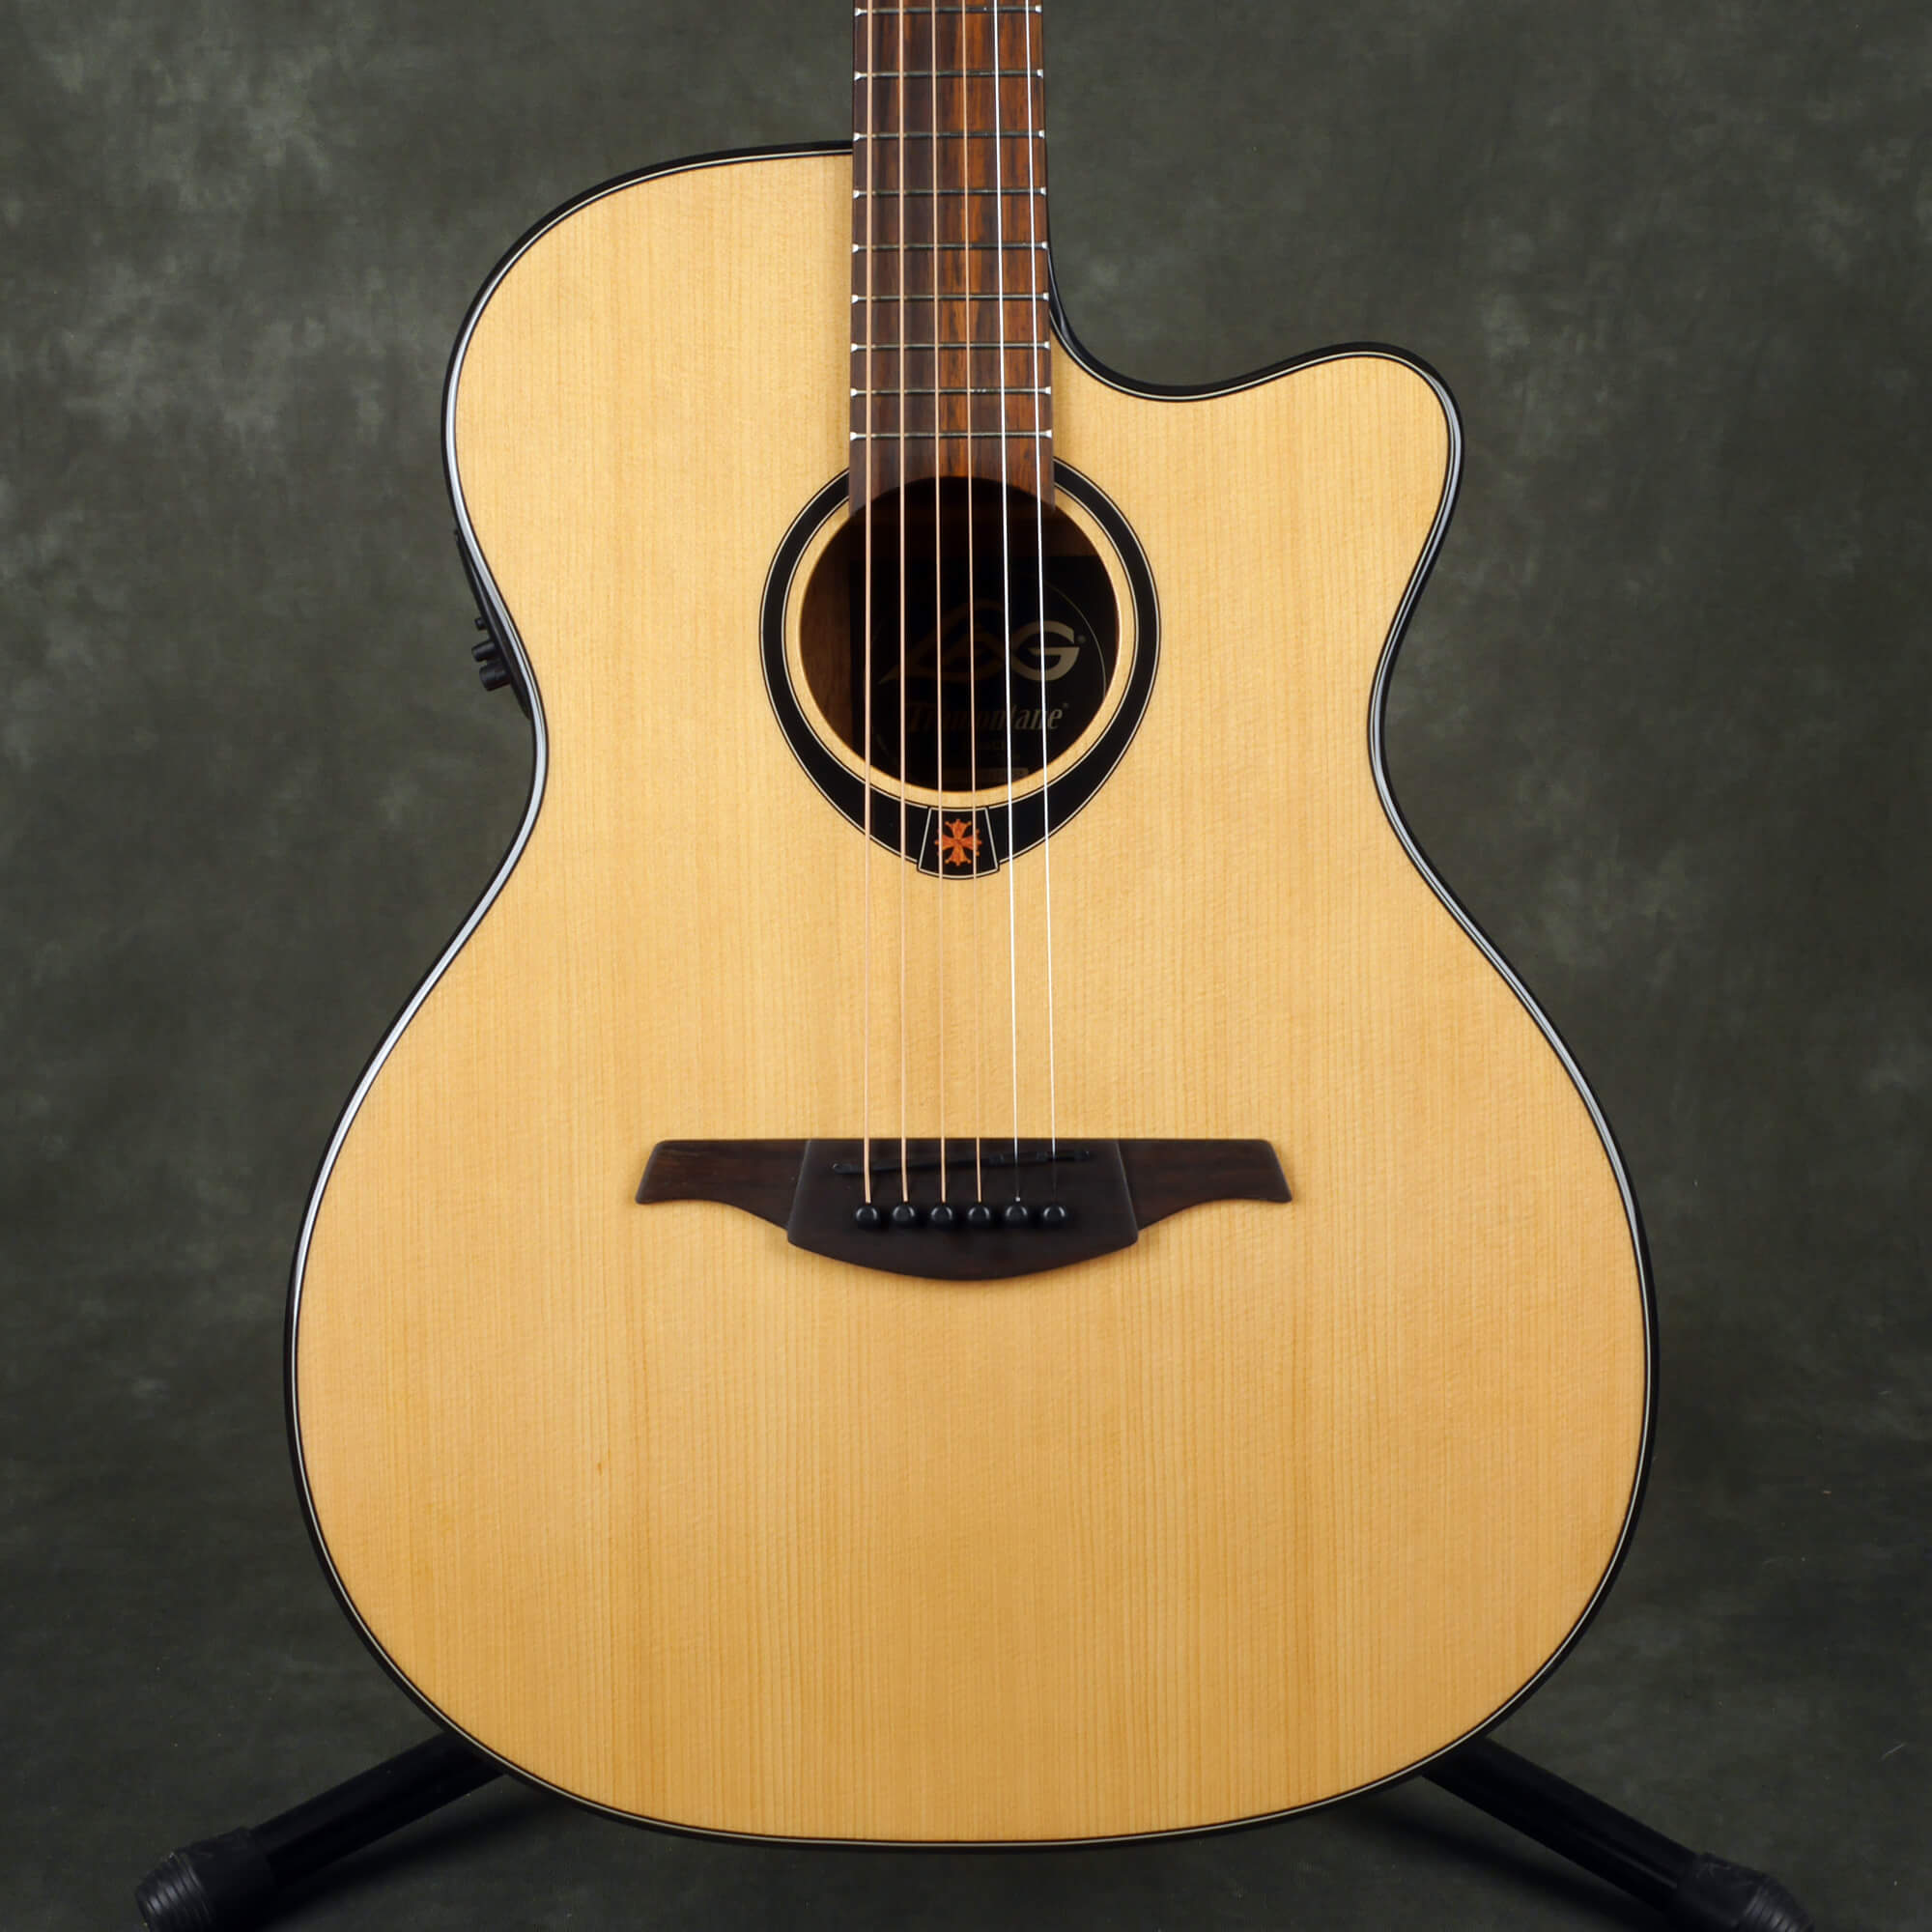 Lag Tramontane T66 ACE Electro-Acoustic Guitar - Natural - 2nd Hand